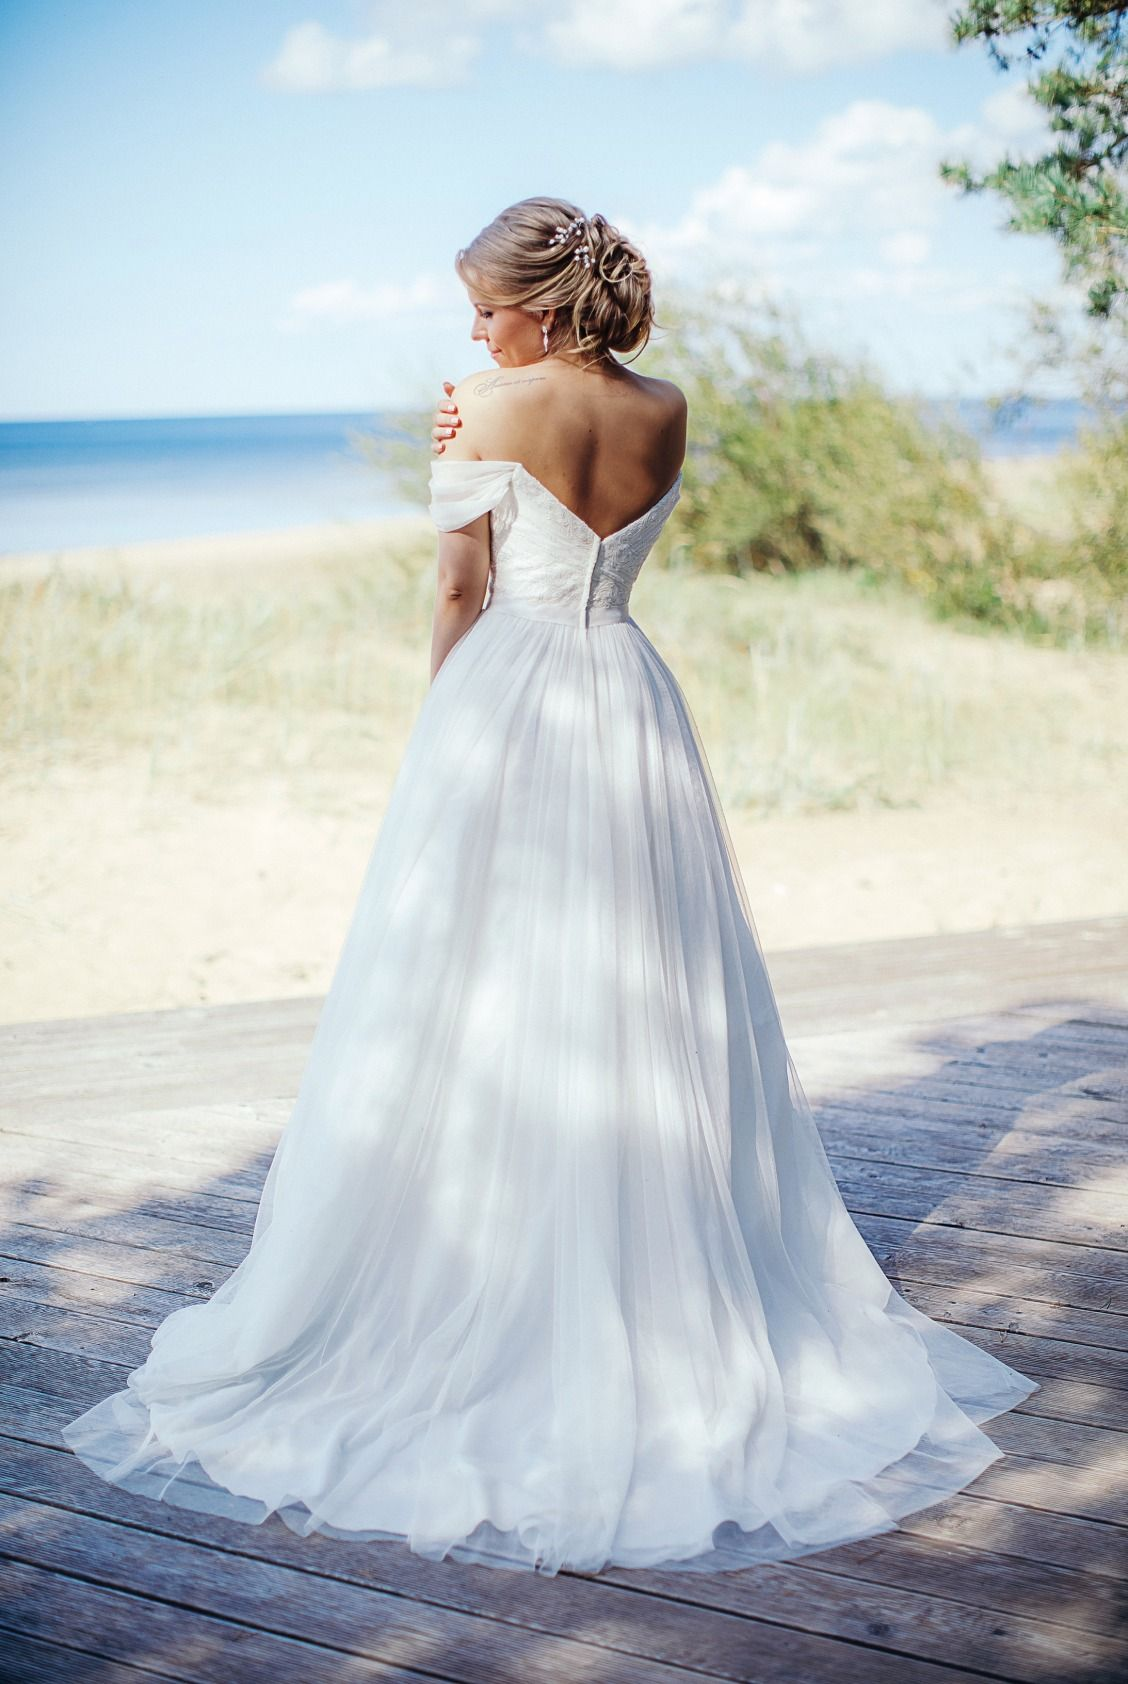 Beach Wedding Dresses David S Bridal Blog Lace Sweetheart Wedding Dress Ball Gowns Wedding Wedding Dresses